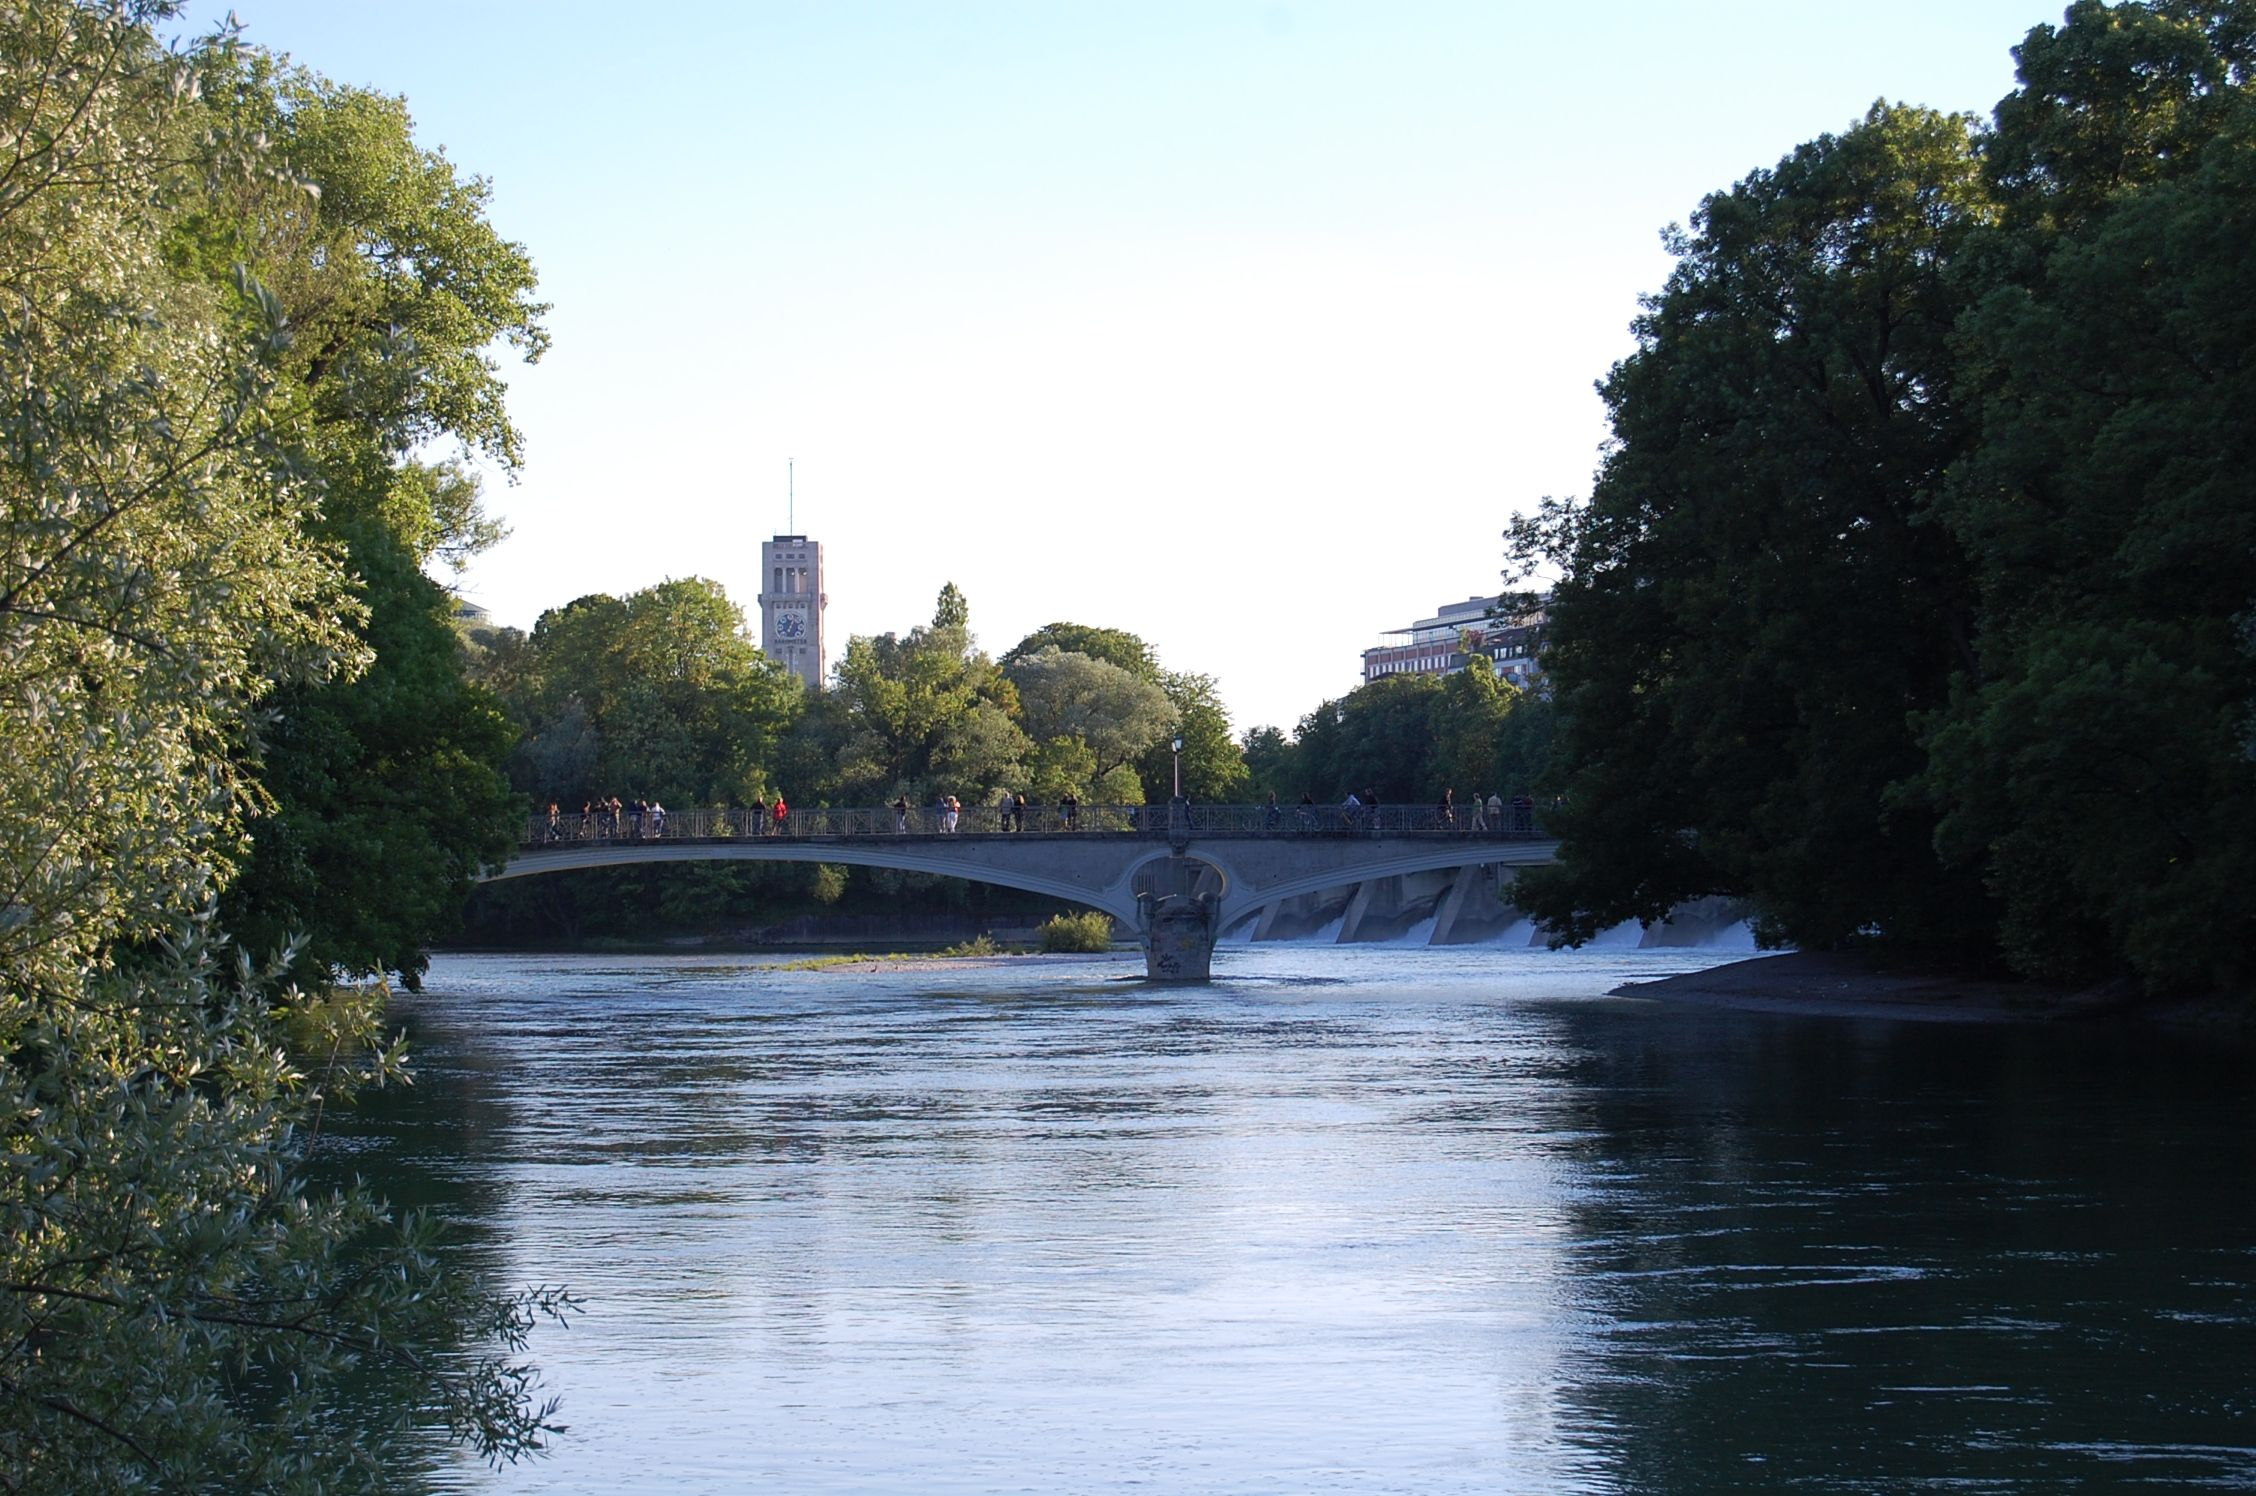 Enjoy a walk at the river Isar in the city center. Close to the Maxmonument, there are nice passways along the river where you have a nice view over the water and parts of the city center. Google Map of all DrupalCon Munich hot spots: http://g.co/maps/4hxqf